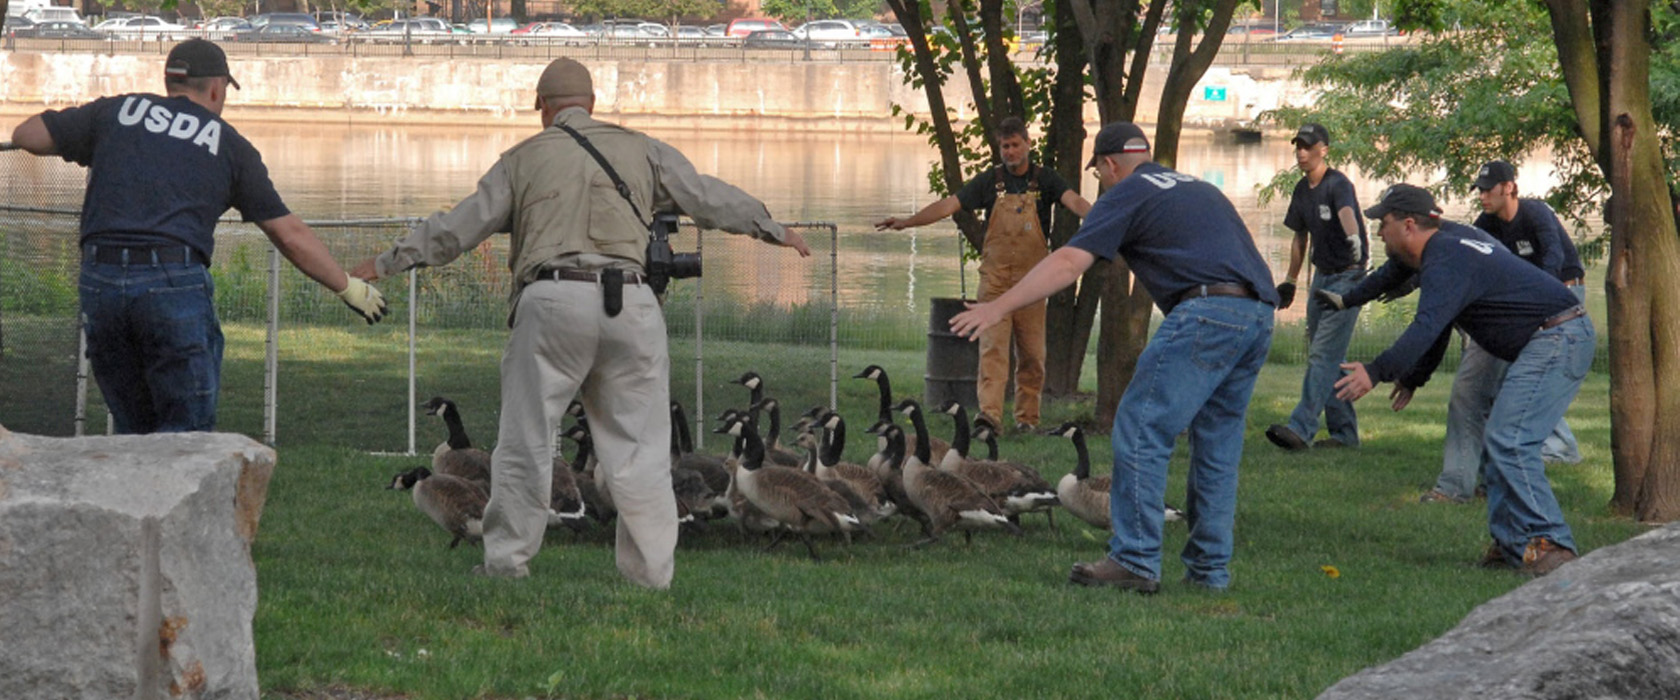 gassing geese